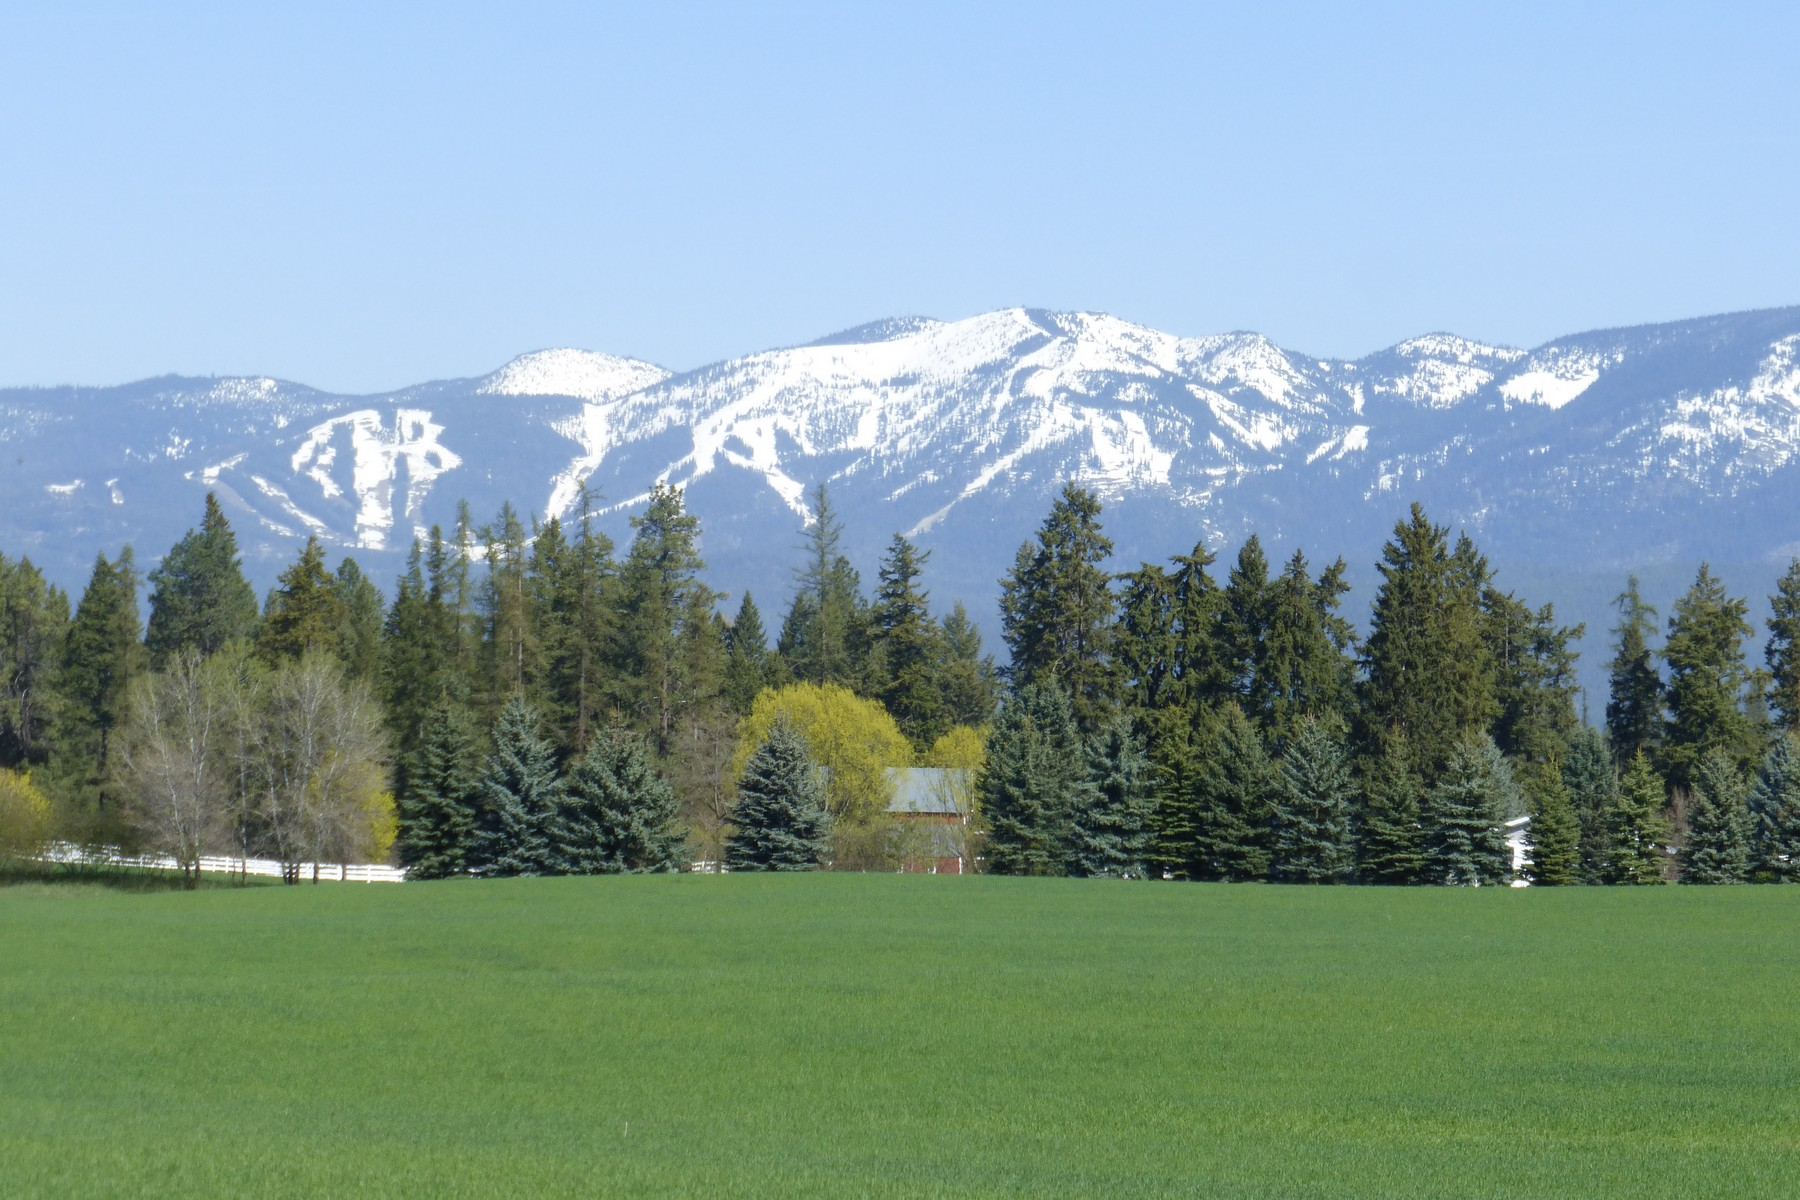 Land for Sale at 30 Acre Estate Property Nhn Whitefish Stage Rd Whitefish, Montana 59937 United States